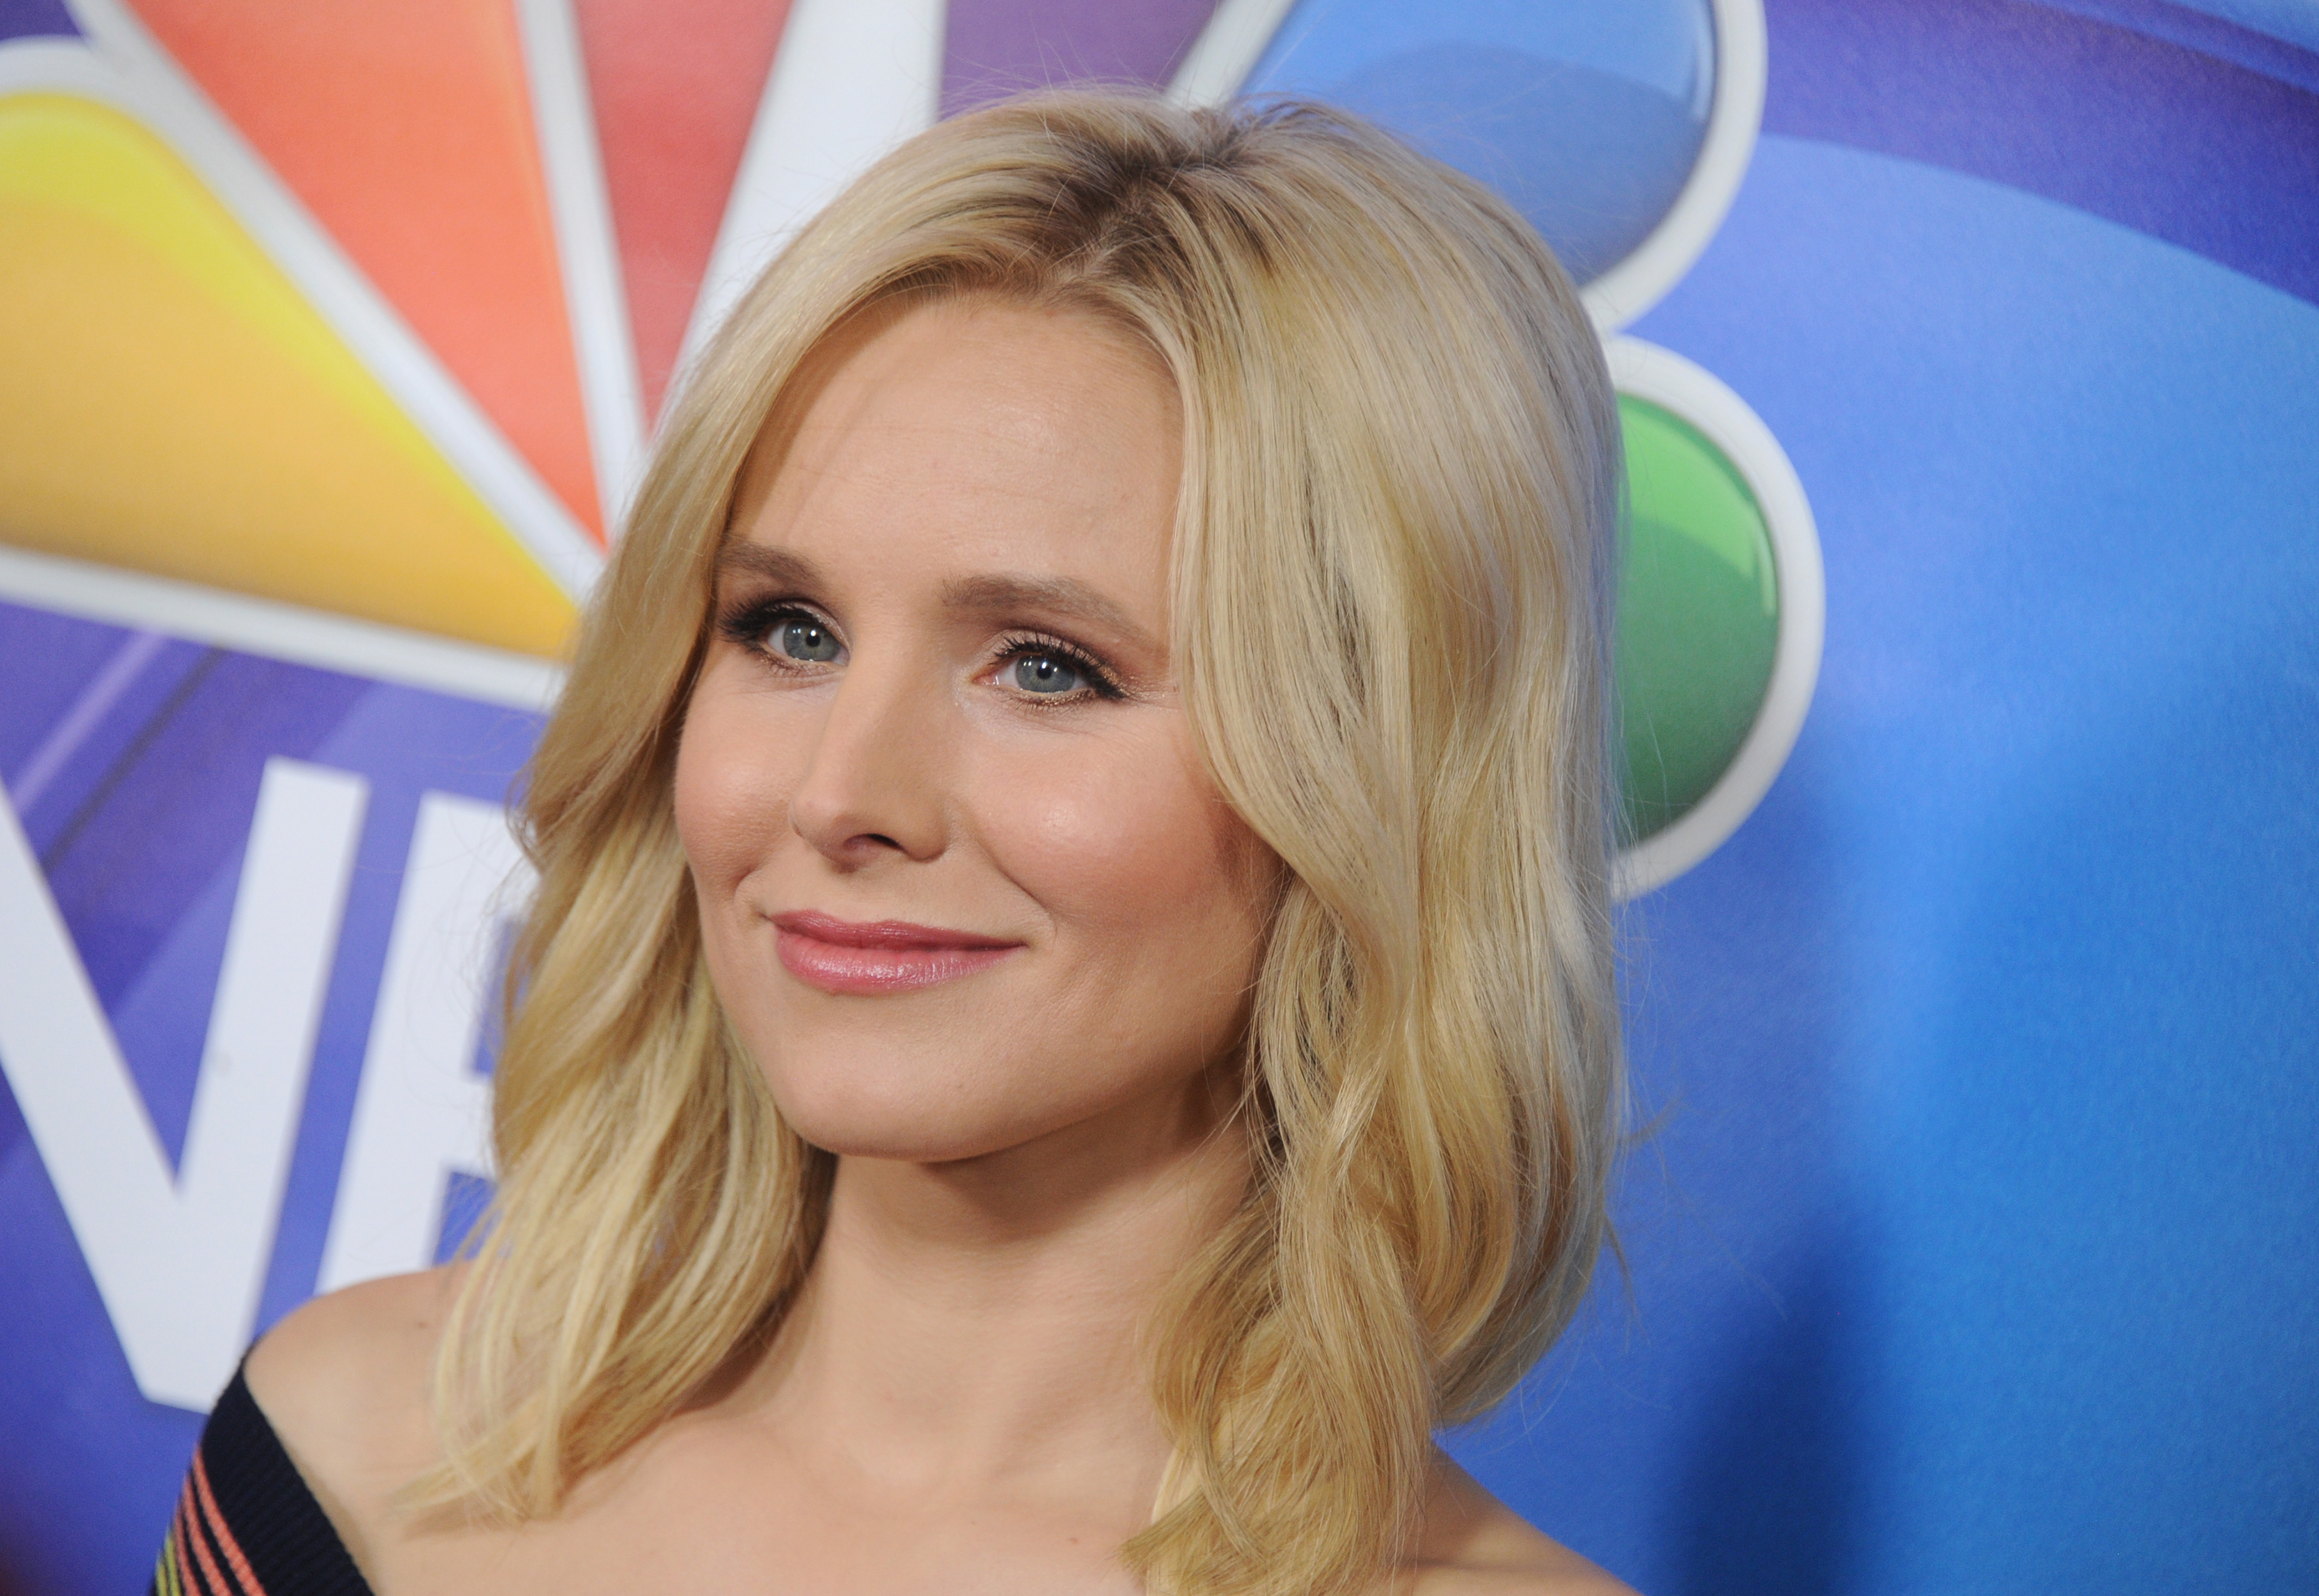 Awww, Kristen Bell *finally* shared a photo of her daughter!